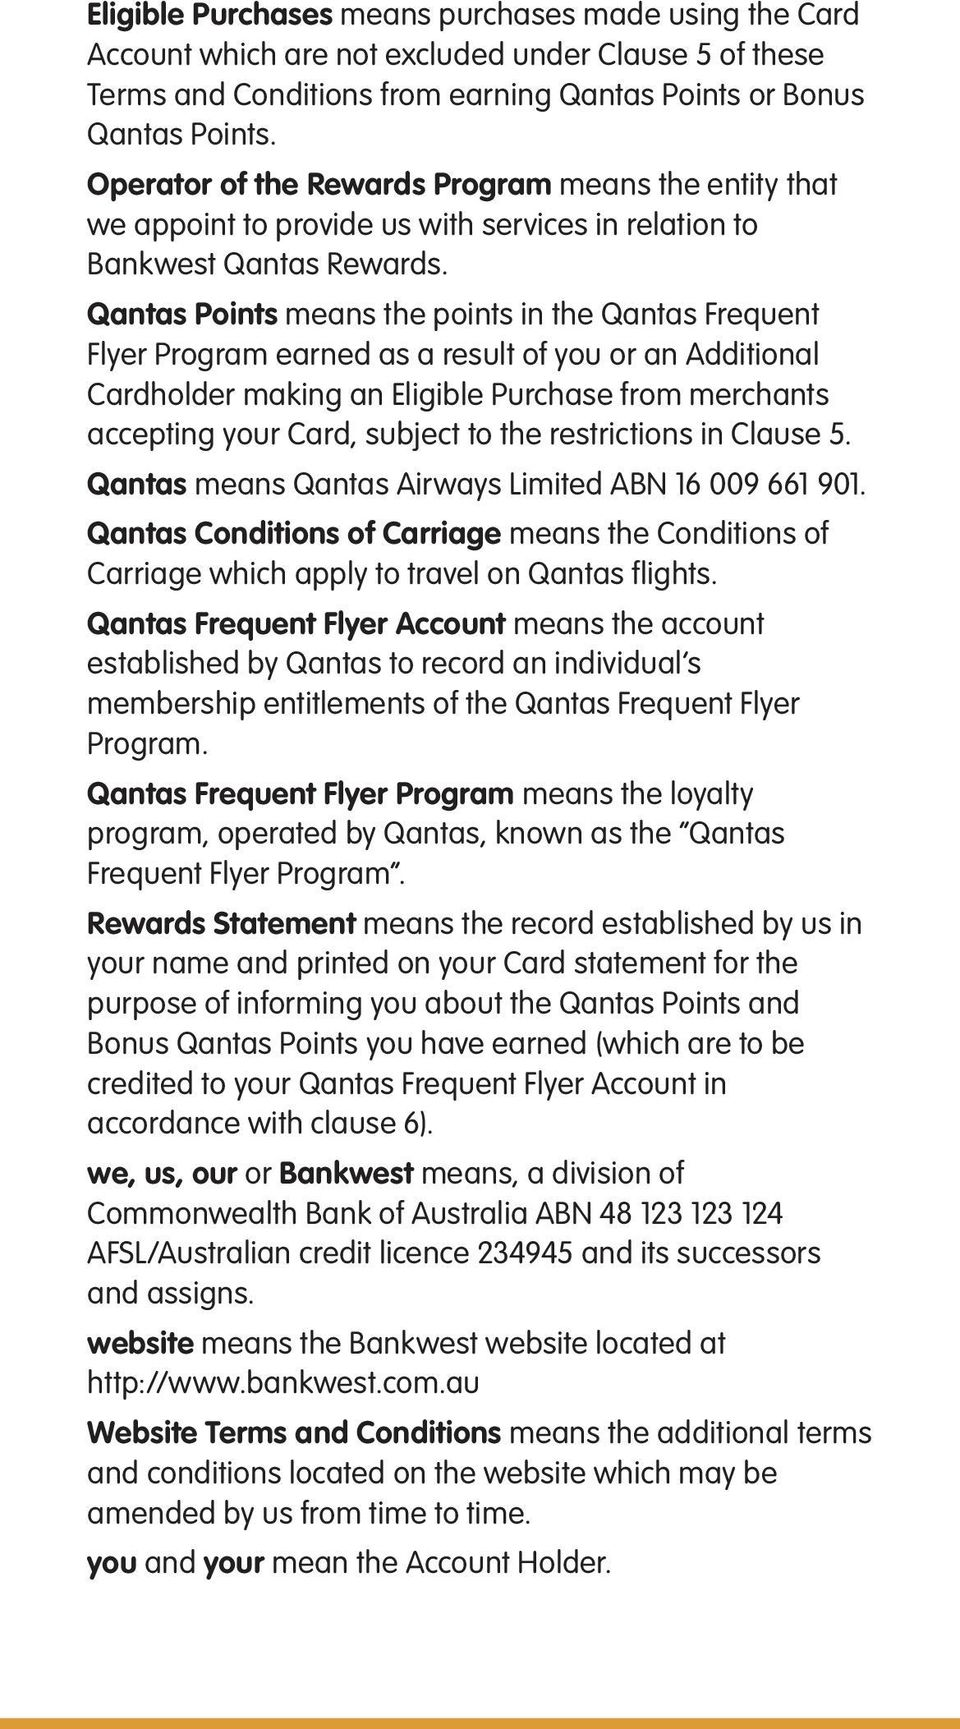 Qantas Points means the points in the Qantas Frequent Flyer Program earned as a result of you or an Additional Cardholder making an Eligible Purchase from merchants accepting your Card, subject to